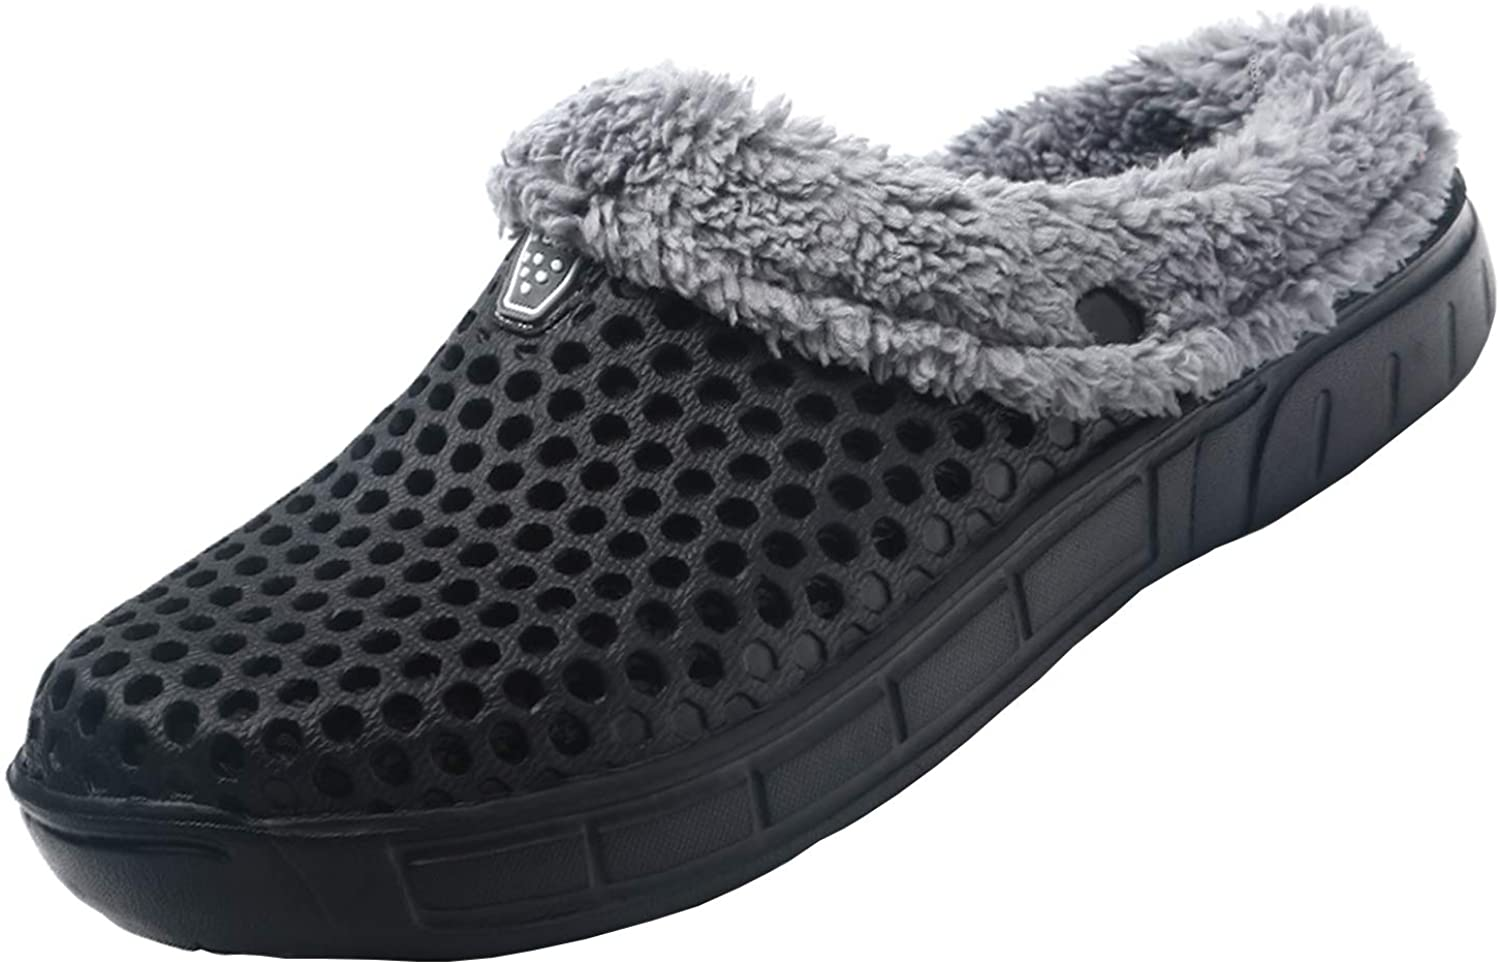 YUKTOPA Unisex Garden Clogs House Slippers Fur Lined Winter Breathable Walking Garden Shoes Warm Non-Slip Mule Footwear